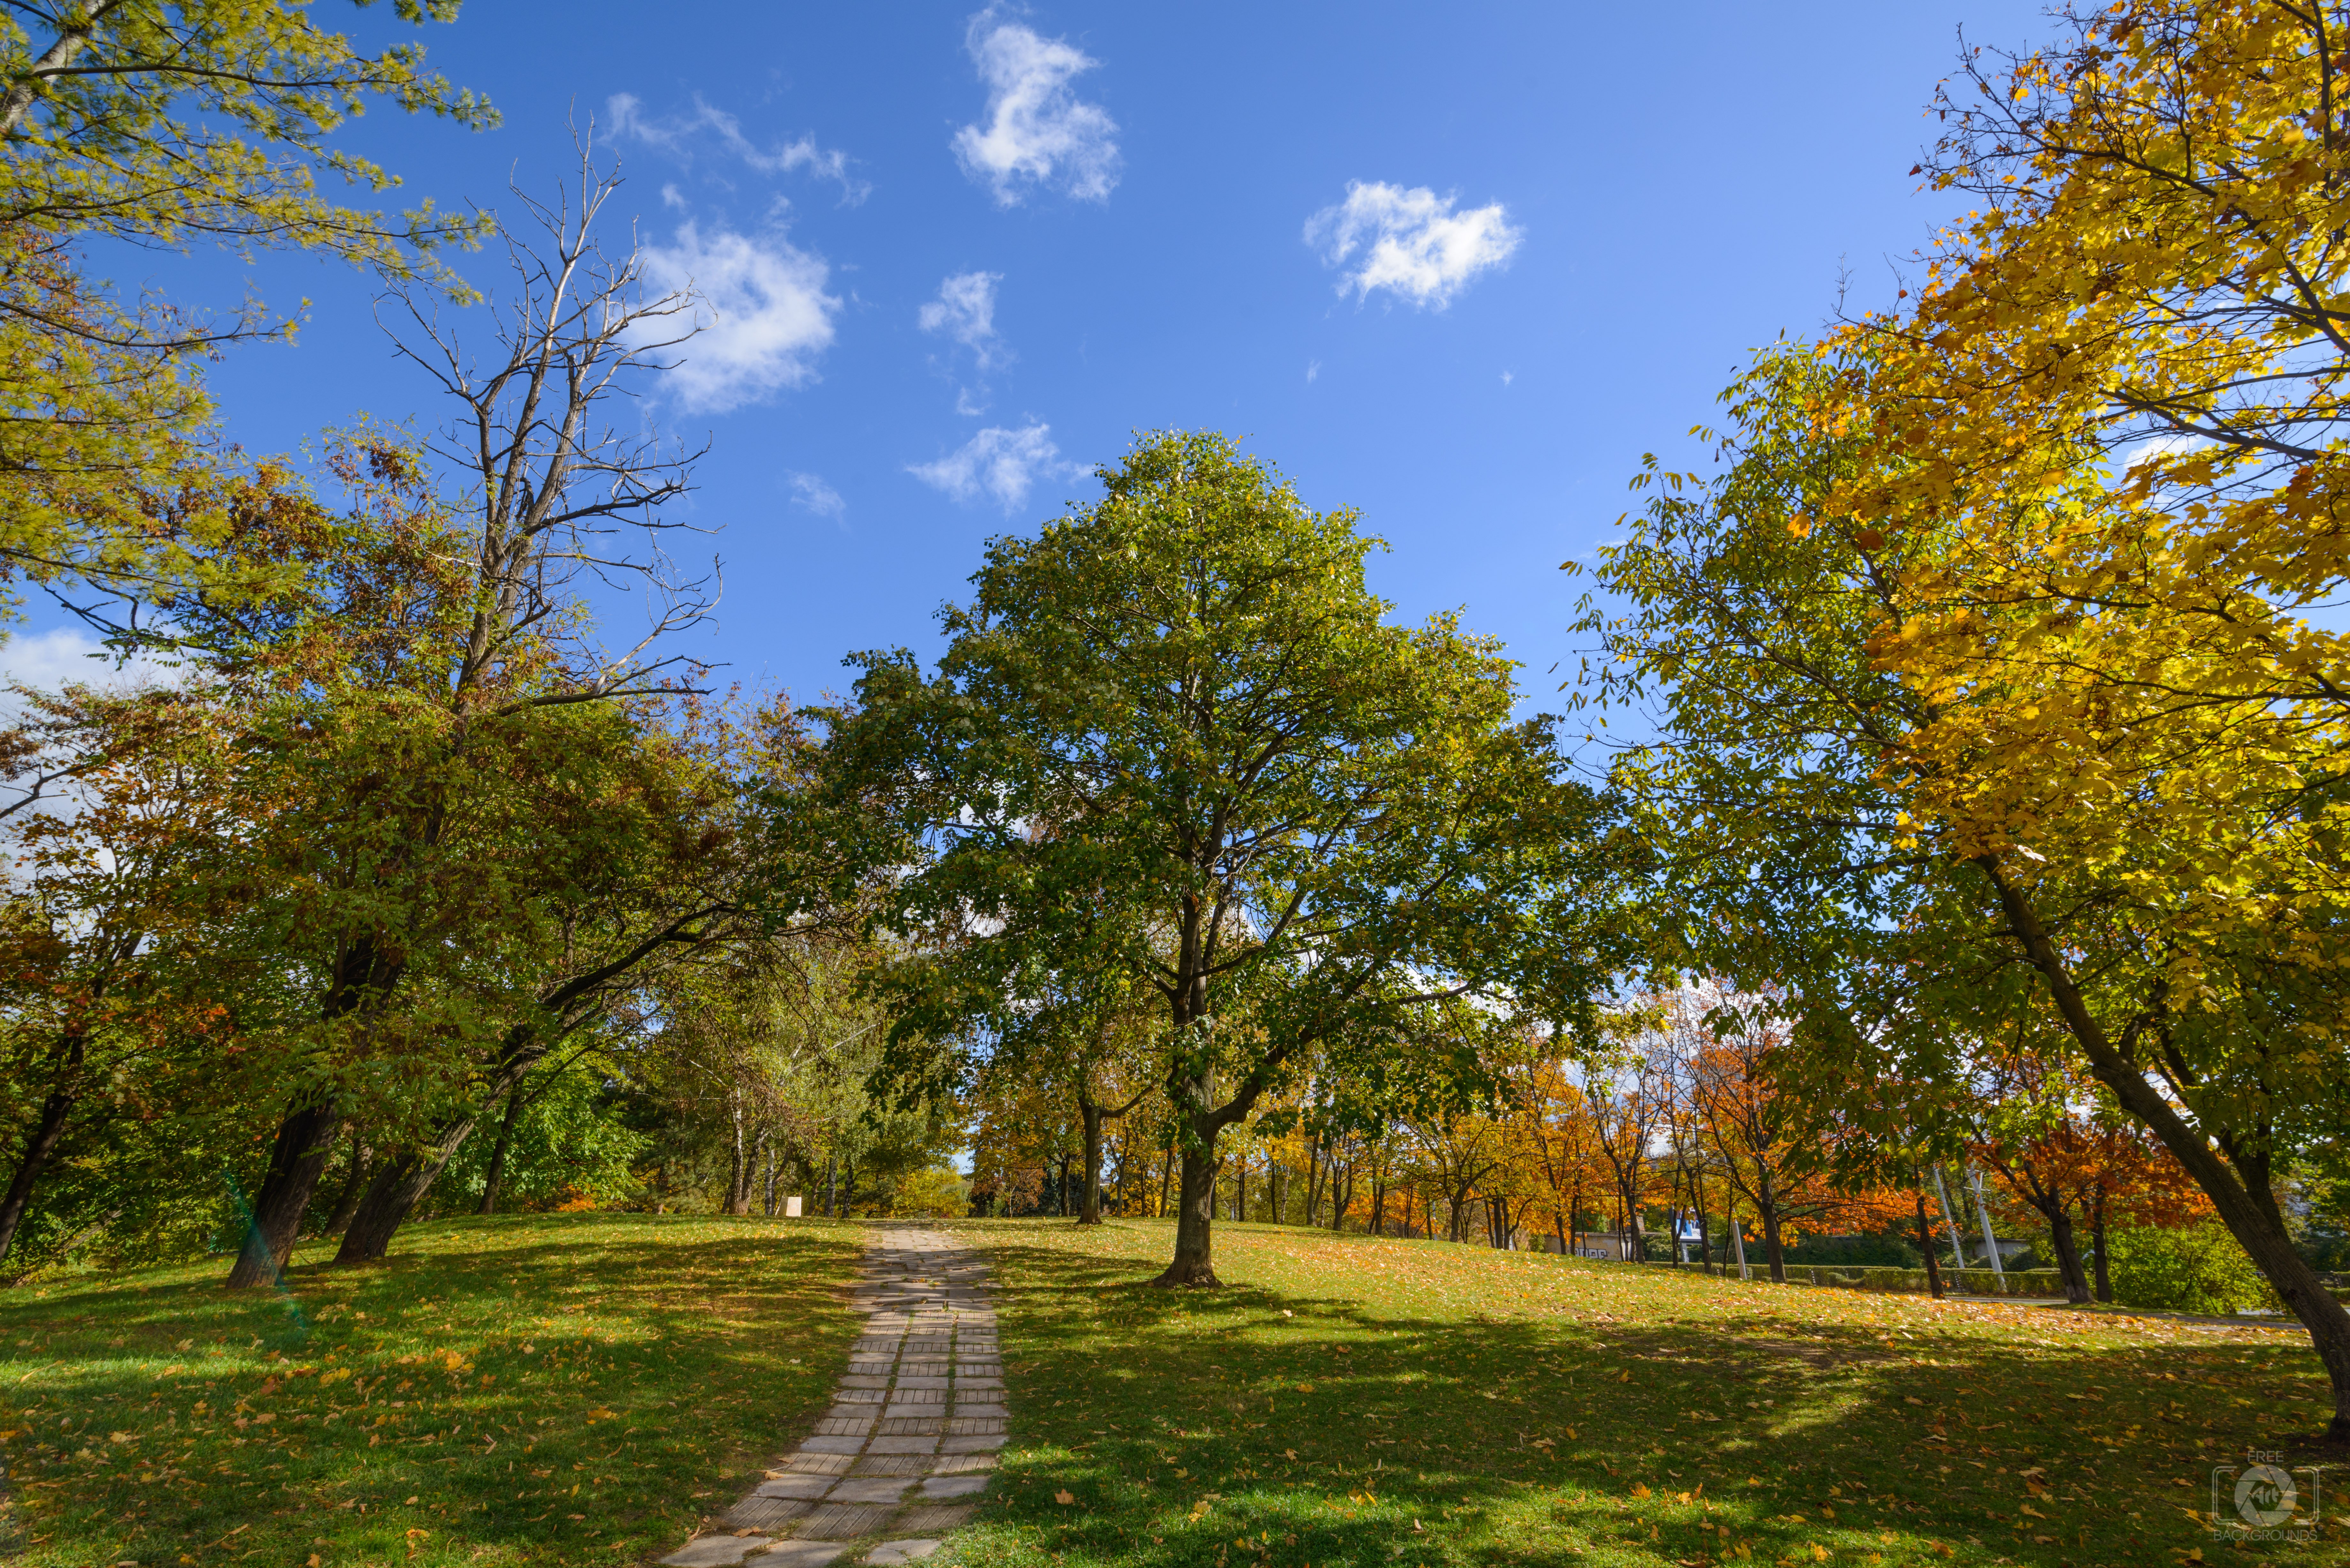 Autumn Park Trail Background   High quality Backgrounds 7360x4912